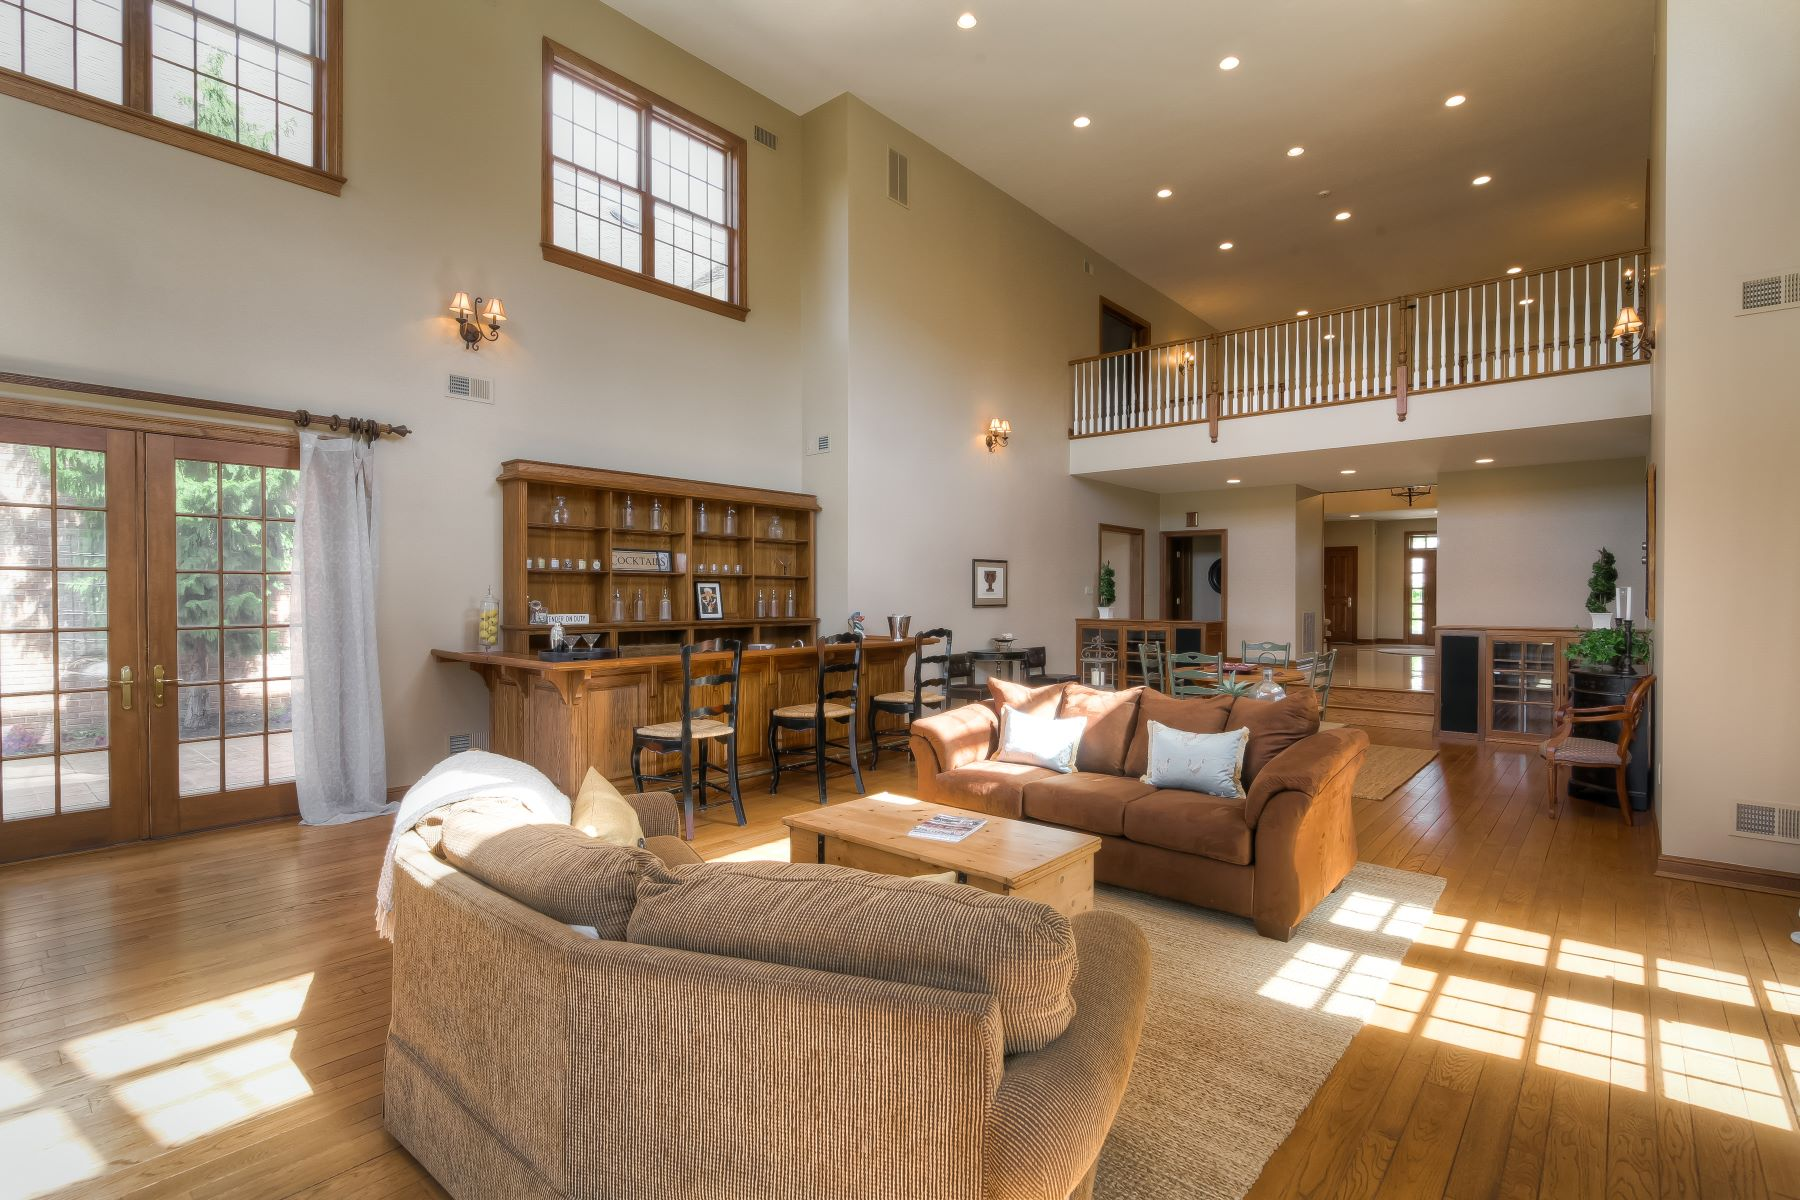 Additional photo for property listing at Sophisticated Country Living 23 Welsh Lane Harding Township, New Jersey 07976 United States